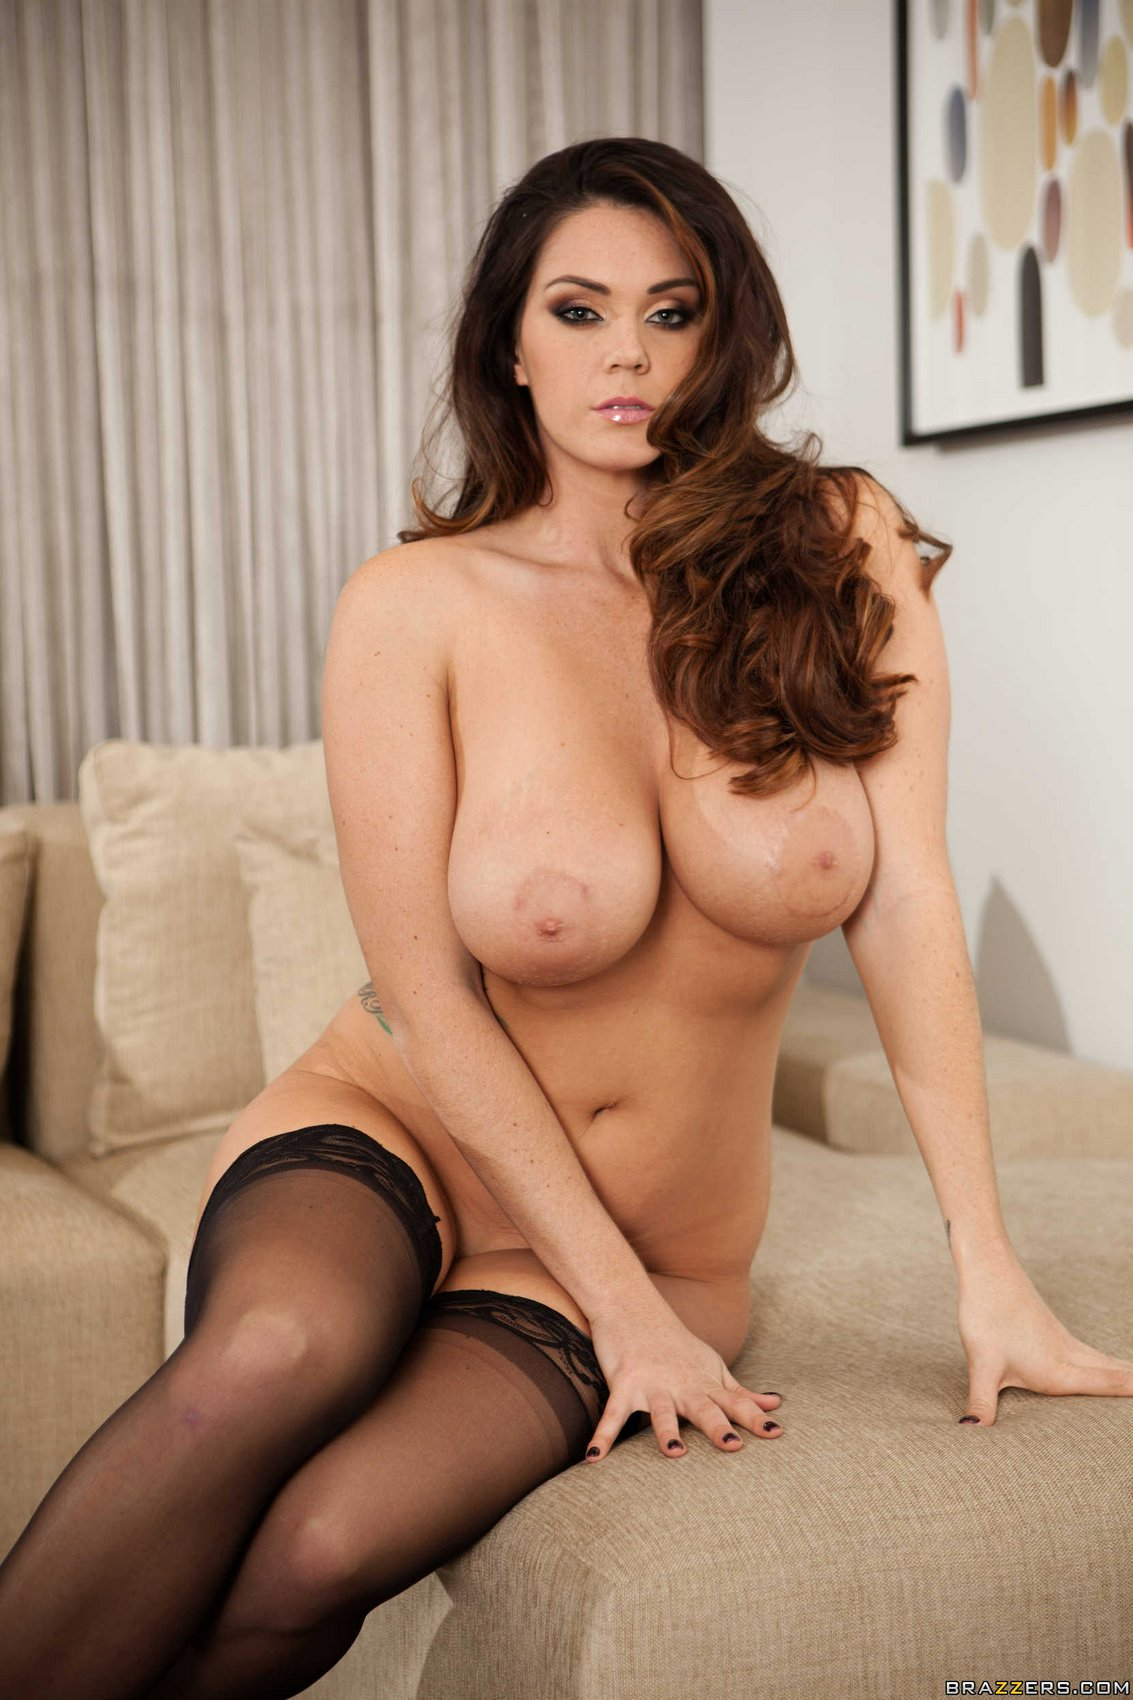 Six foot goddess alison tyler stuffs her pussy with a toy 3